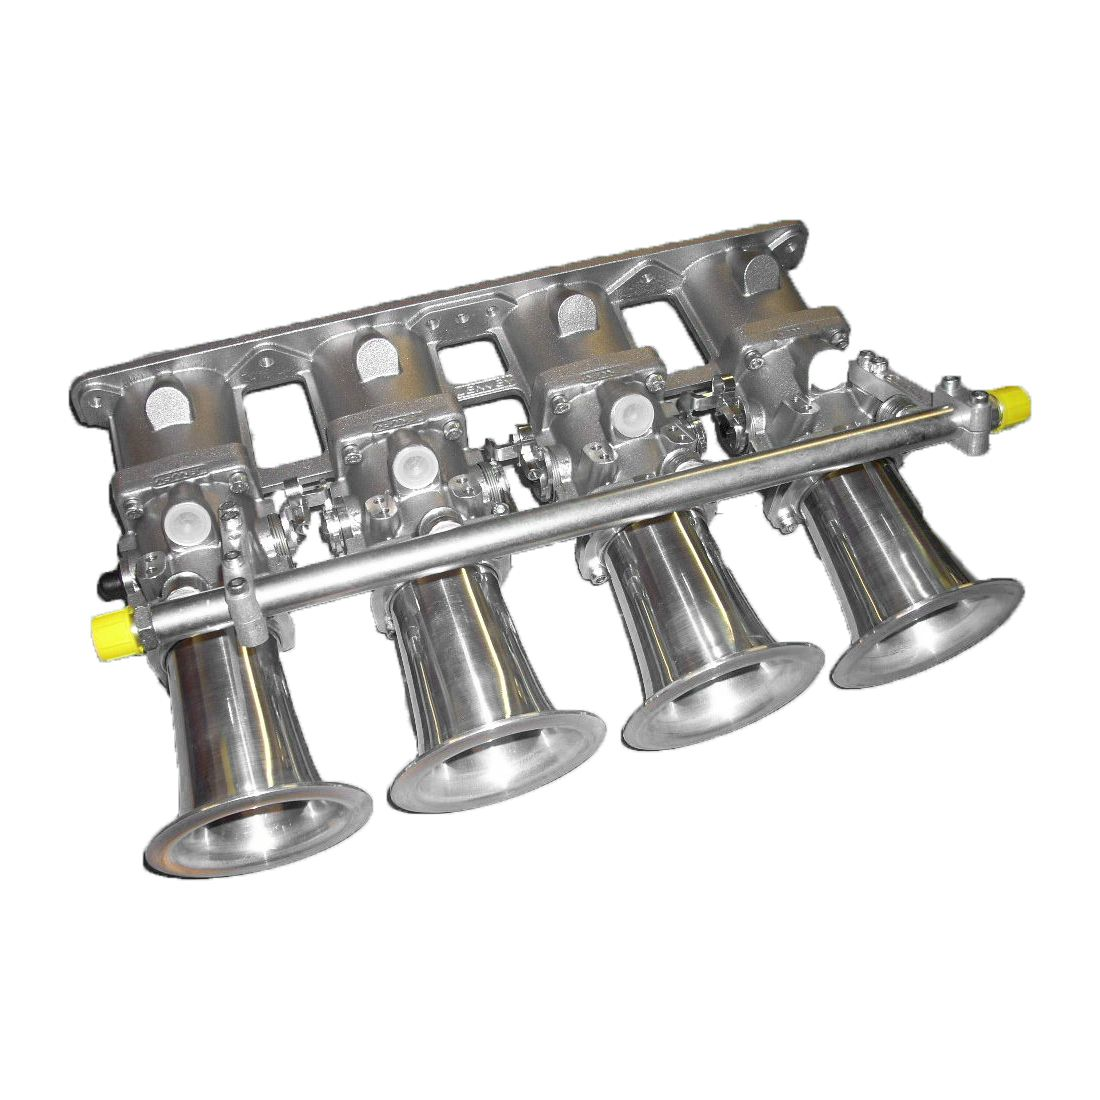 hight resolution of vw polo 6n 6n2 lupo gti 1 4 1 6 16v individual throttle body kit itbs rennsport factory